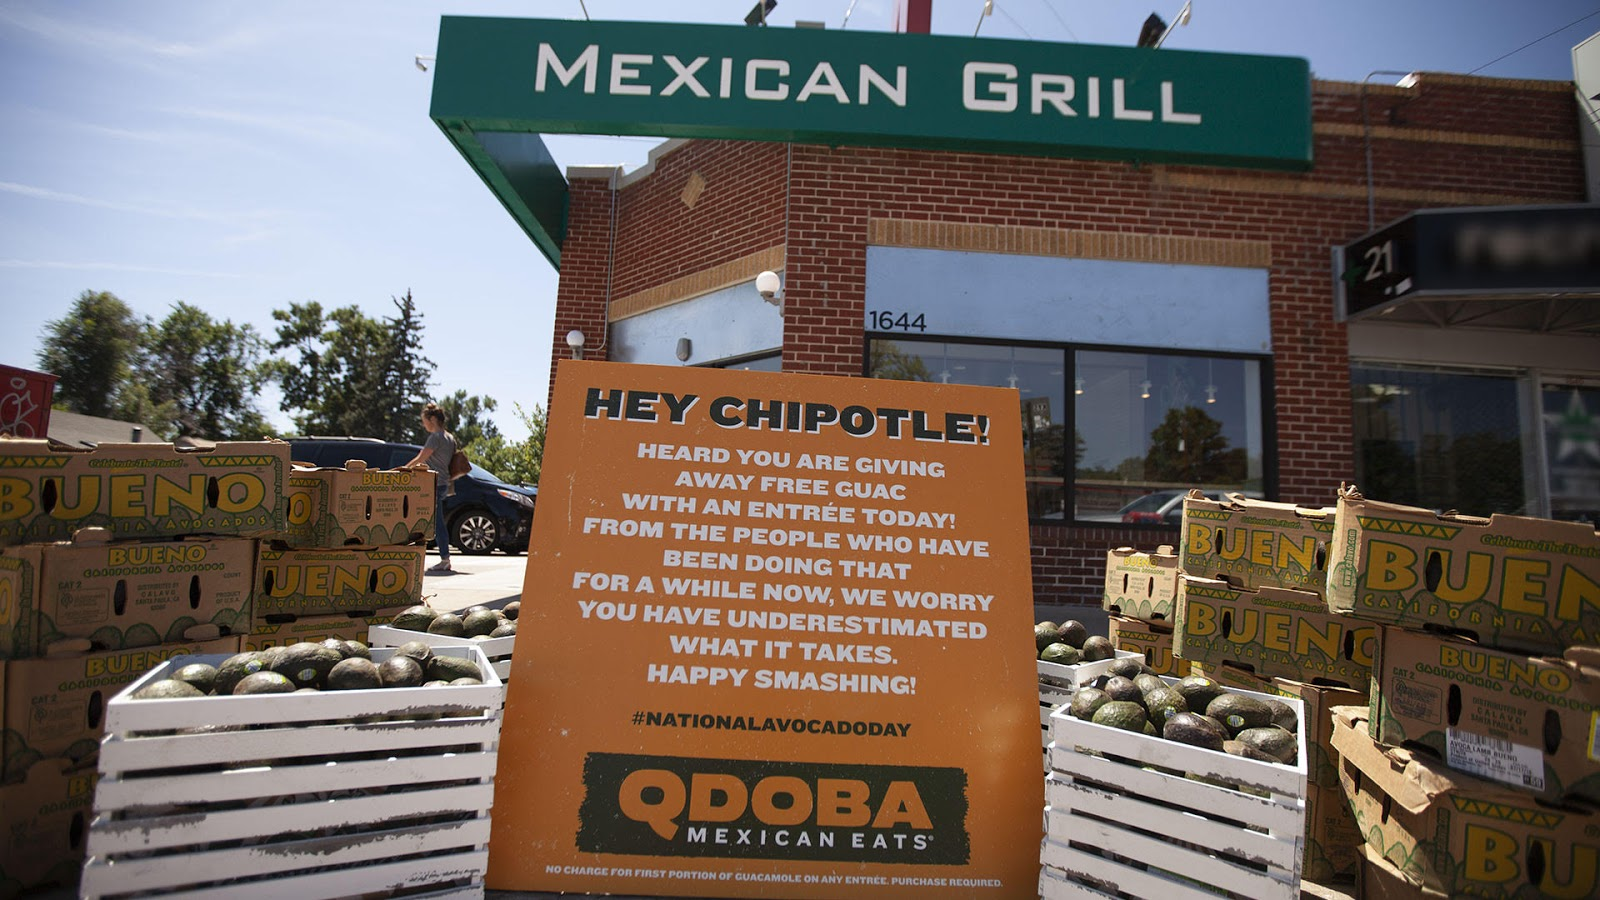 For National Avocado Day, QDOBA Ships Competitor a Truckload of ...